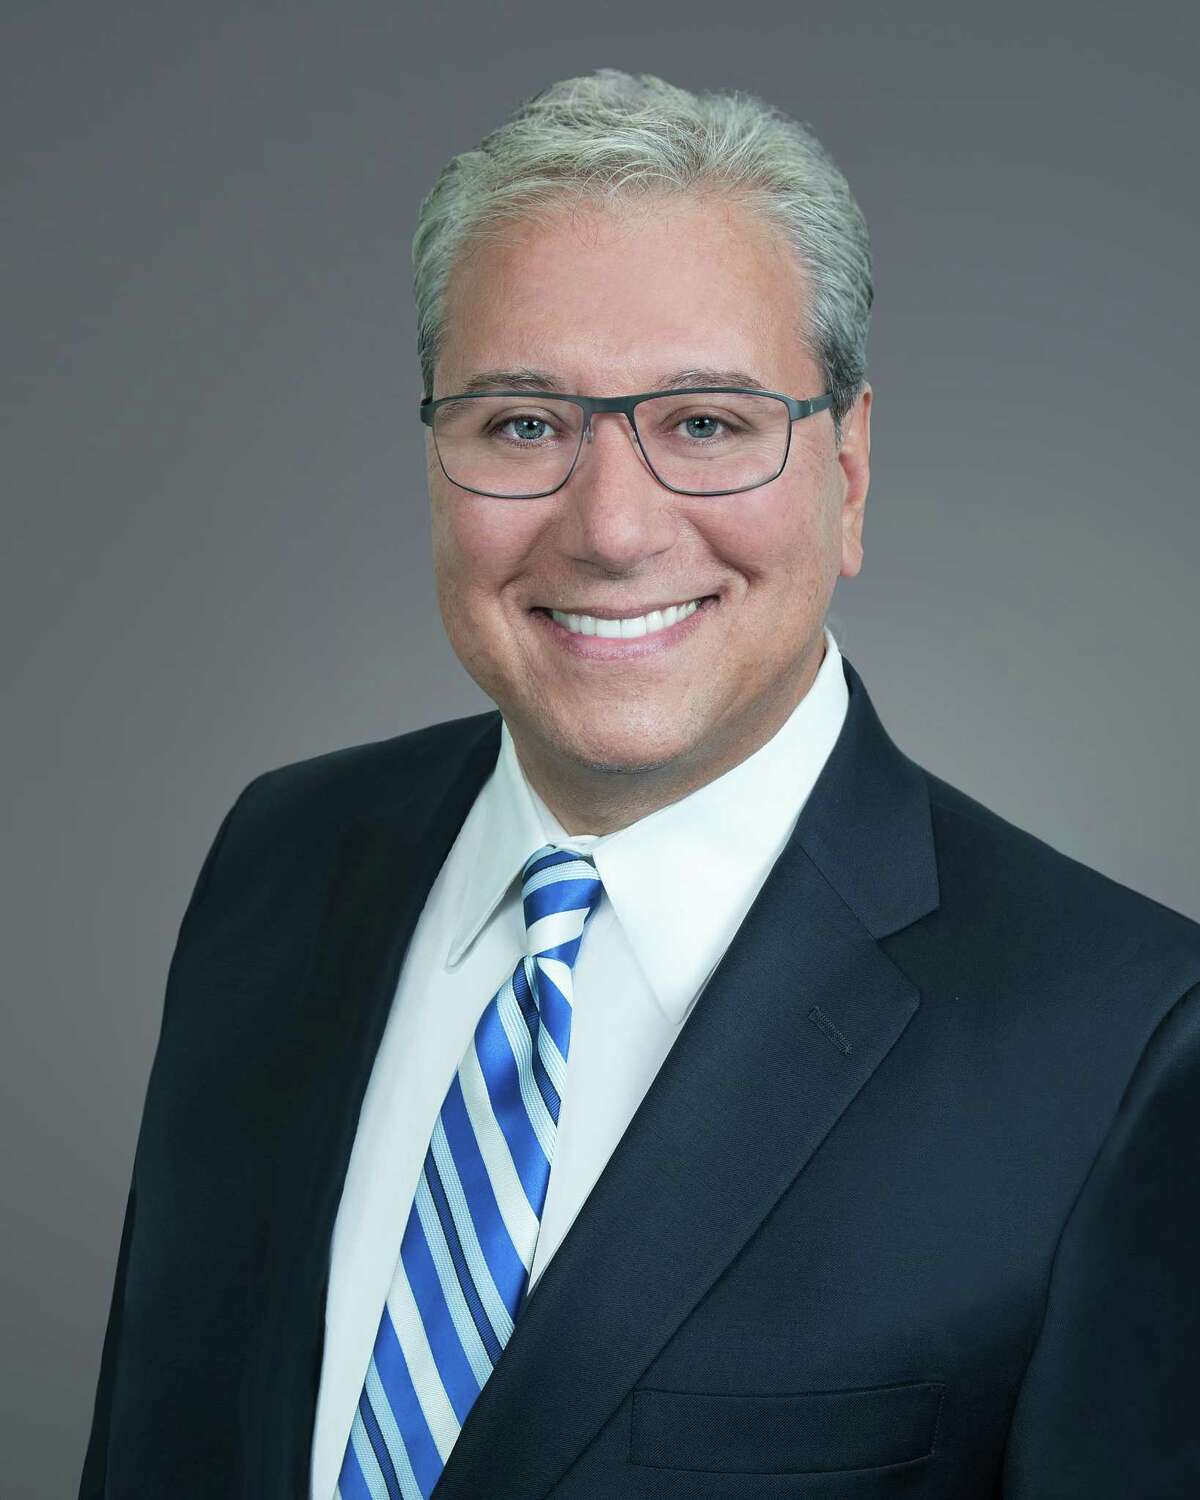 Thom Parrino, of New Canaan, co-founded a new law firm Parrino|Shattuck PC in Westport.